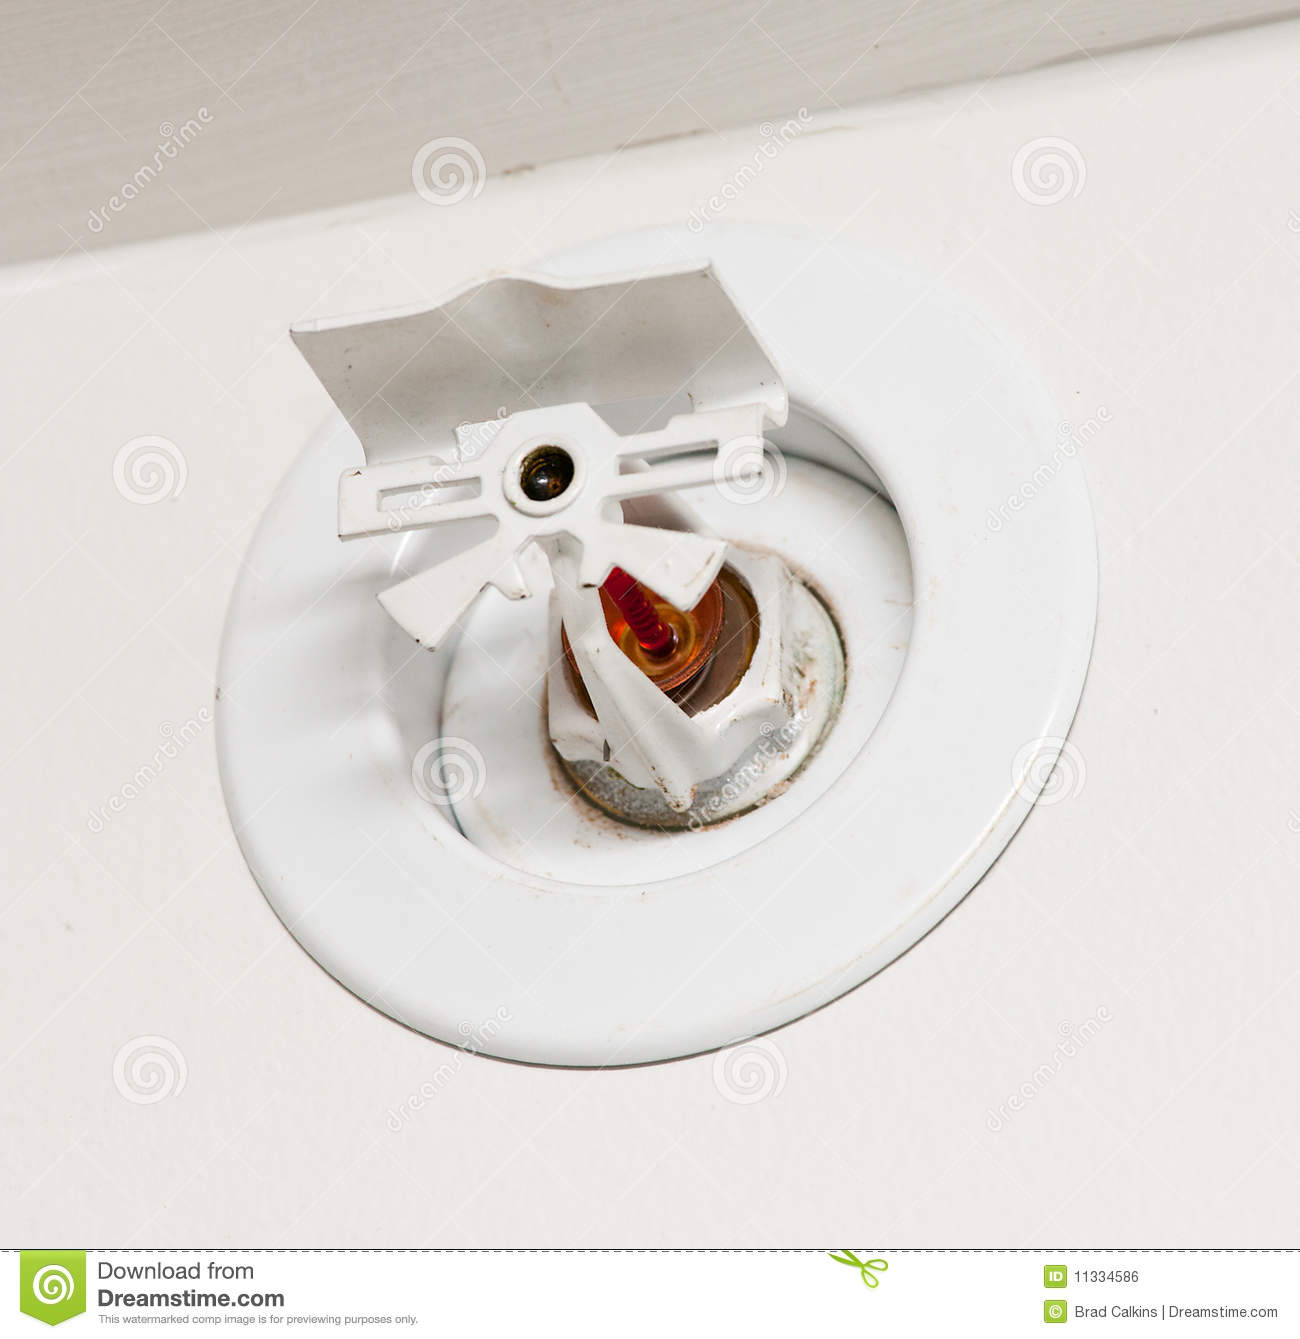 Fire Sprinkler Royalty Free Stock Image - Image: 11334586